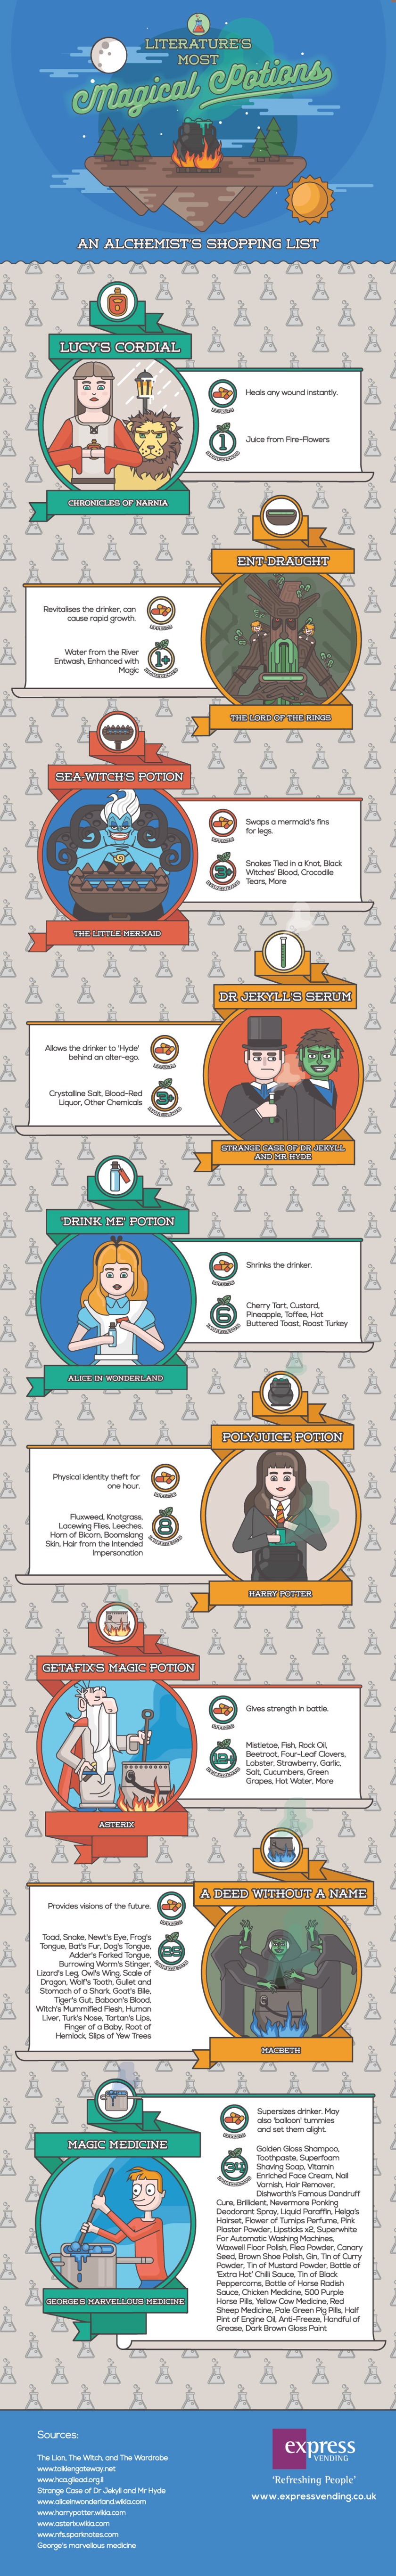 Literatures-most-magical-beverages-full-infographic